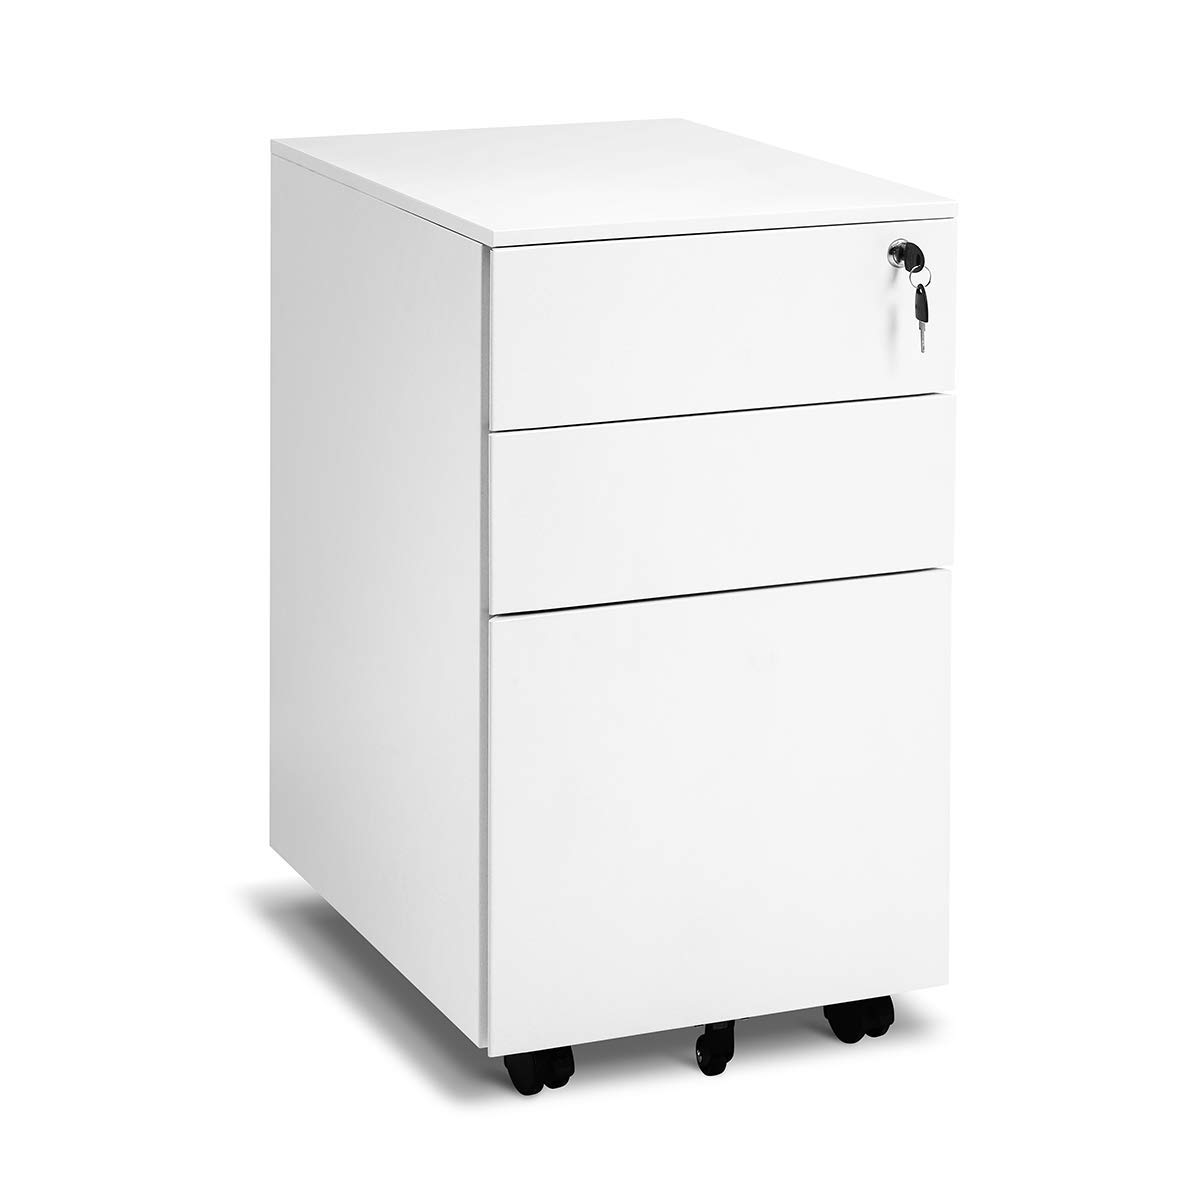 Superday Locking File Cabinet 3-Drawer Metal Vertical File Cabinet with Hanging File Frame for Legal Letter File, White